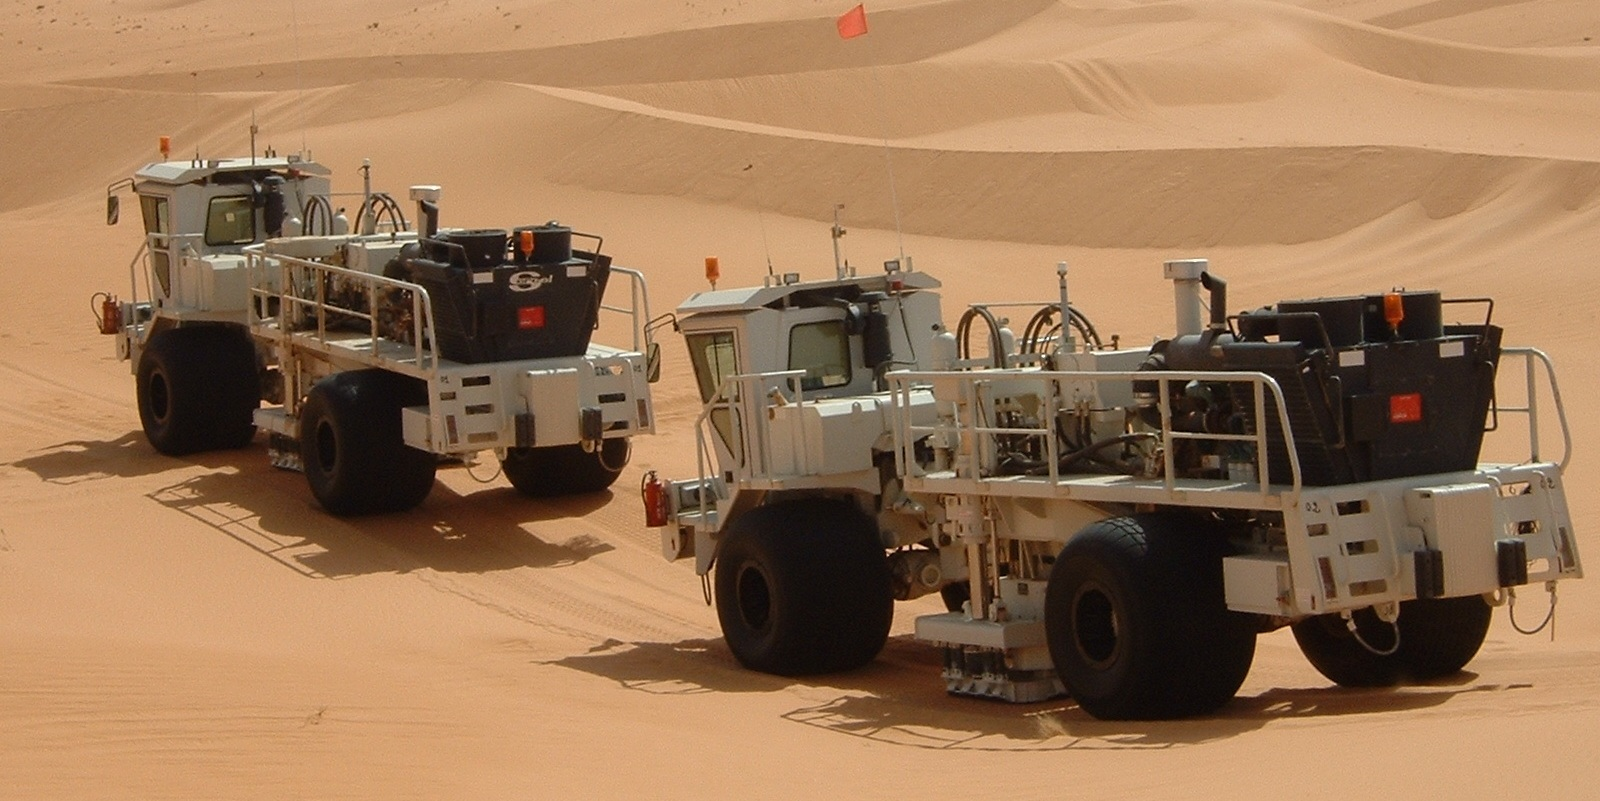 sharjah-seismic-survey-large